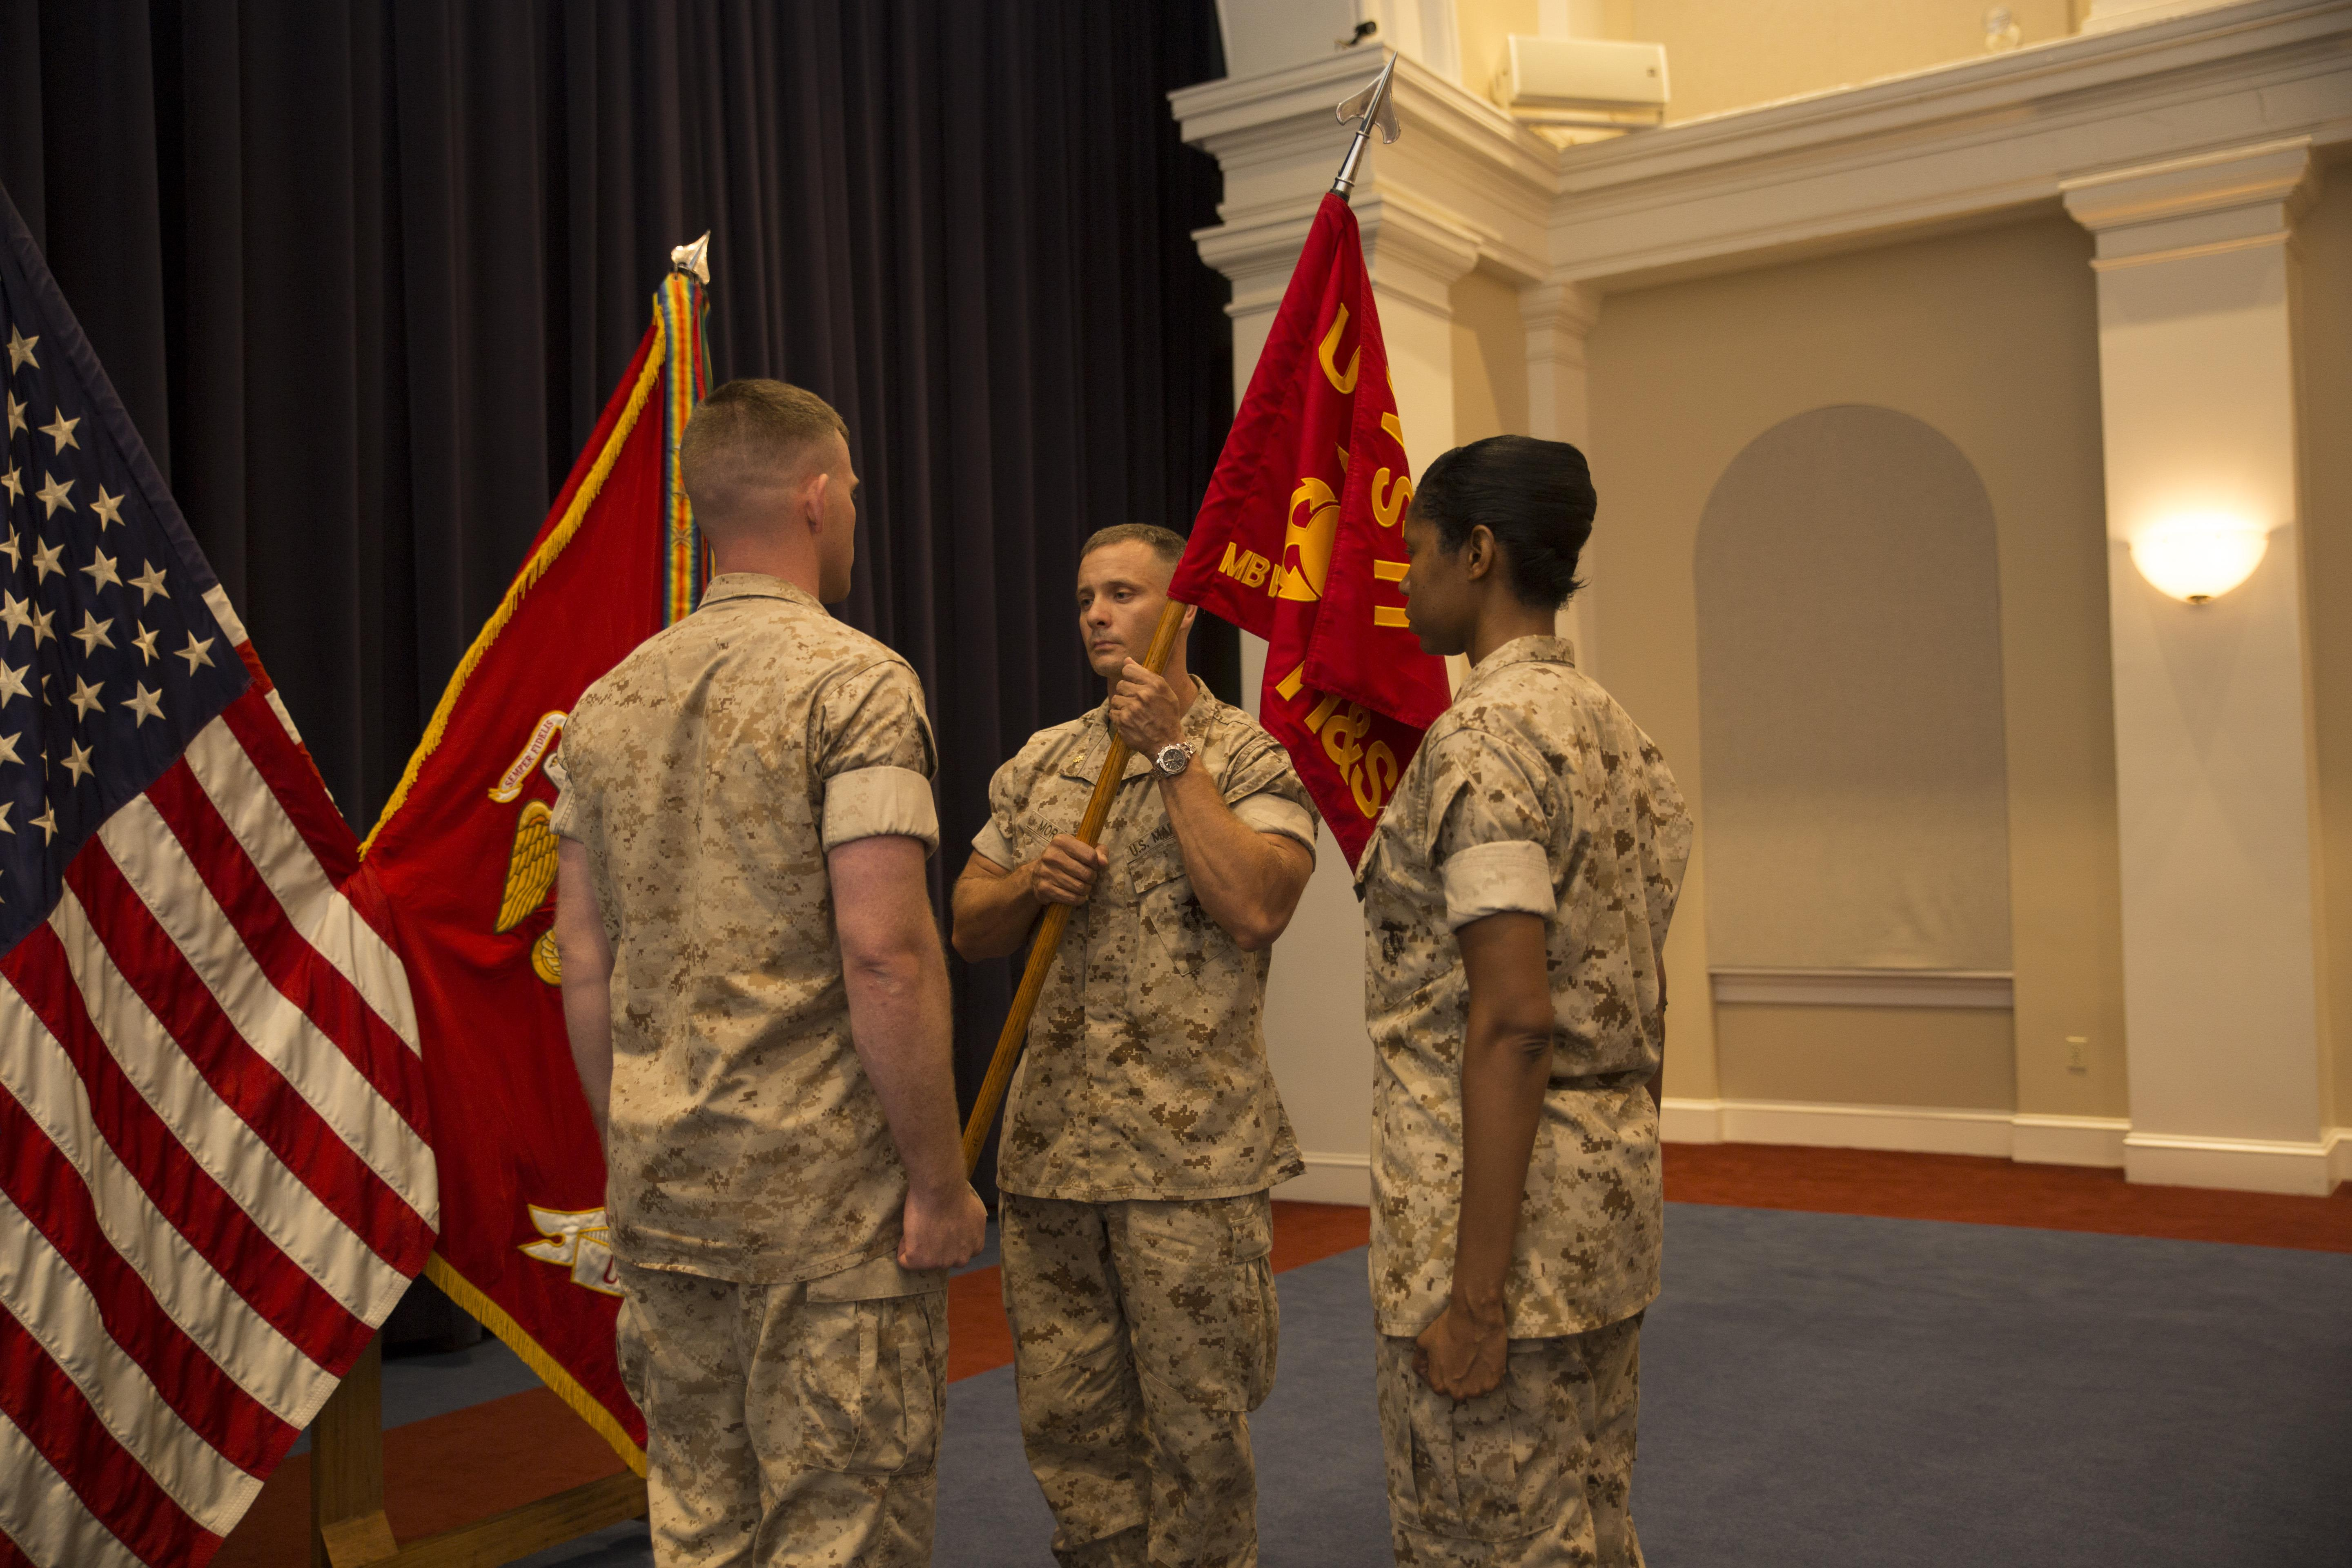 history of the guidon This time of year, hardly a day goes by when there isn't a ceremony somewhere in the world with four people in front of a formationthe guidon bearer, usually the senior enlisted member or first sergeant, stands behind three officers and at the appointed.